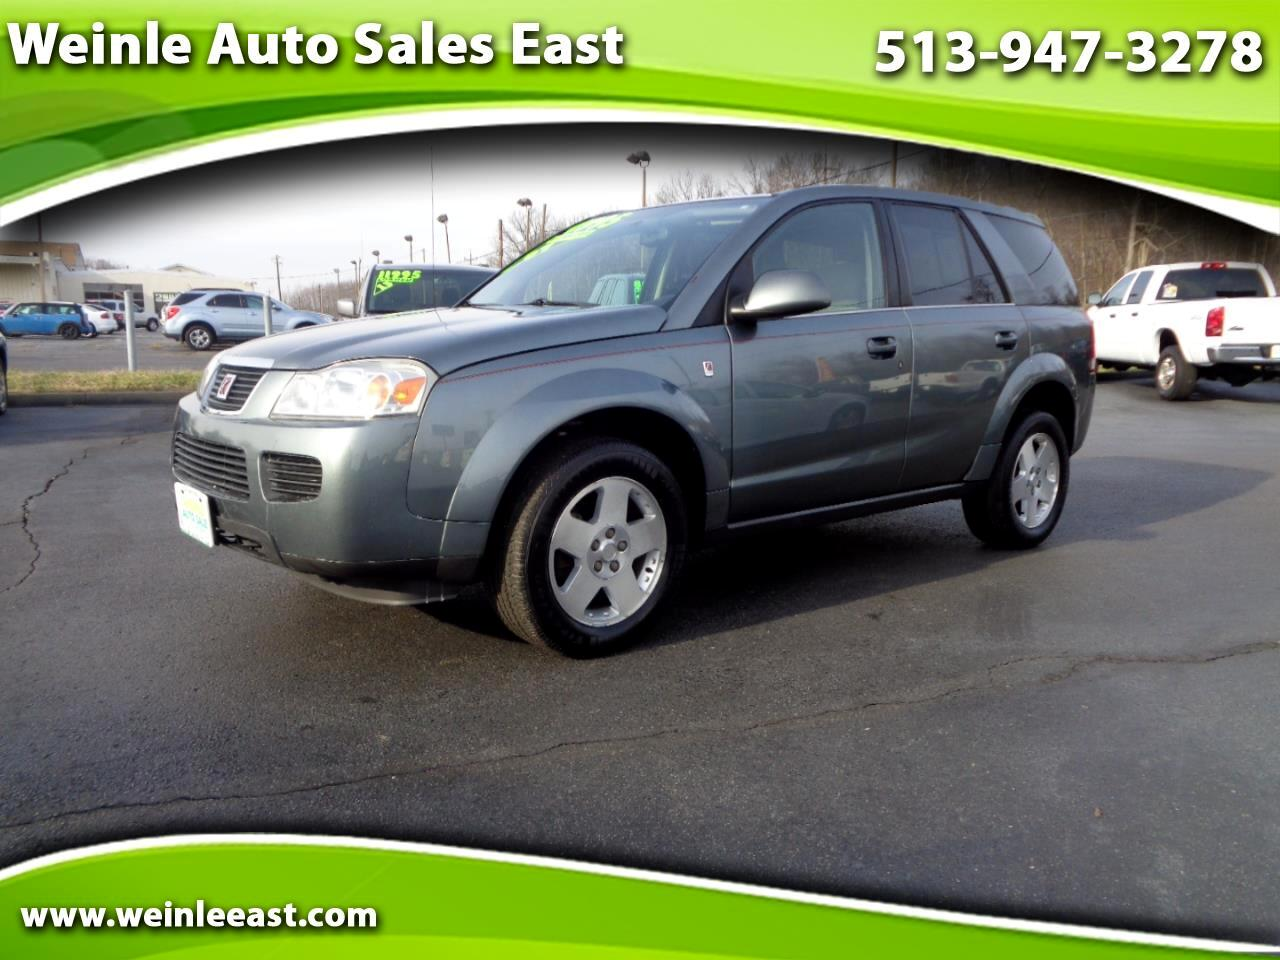 2007 Saturn VUE AWD V6 AUTO W/ ROOF